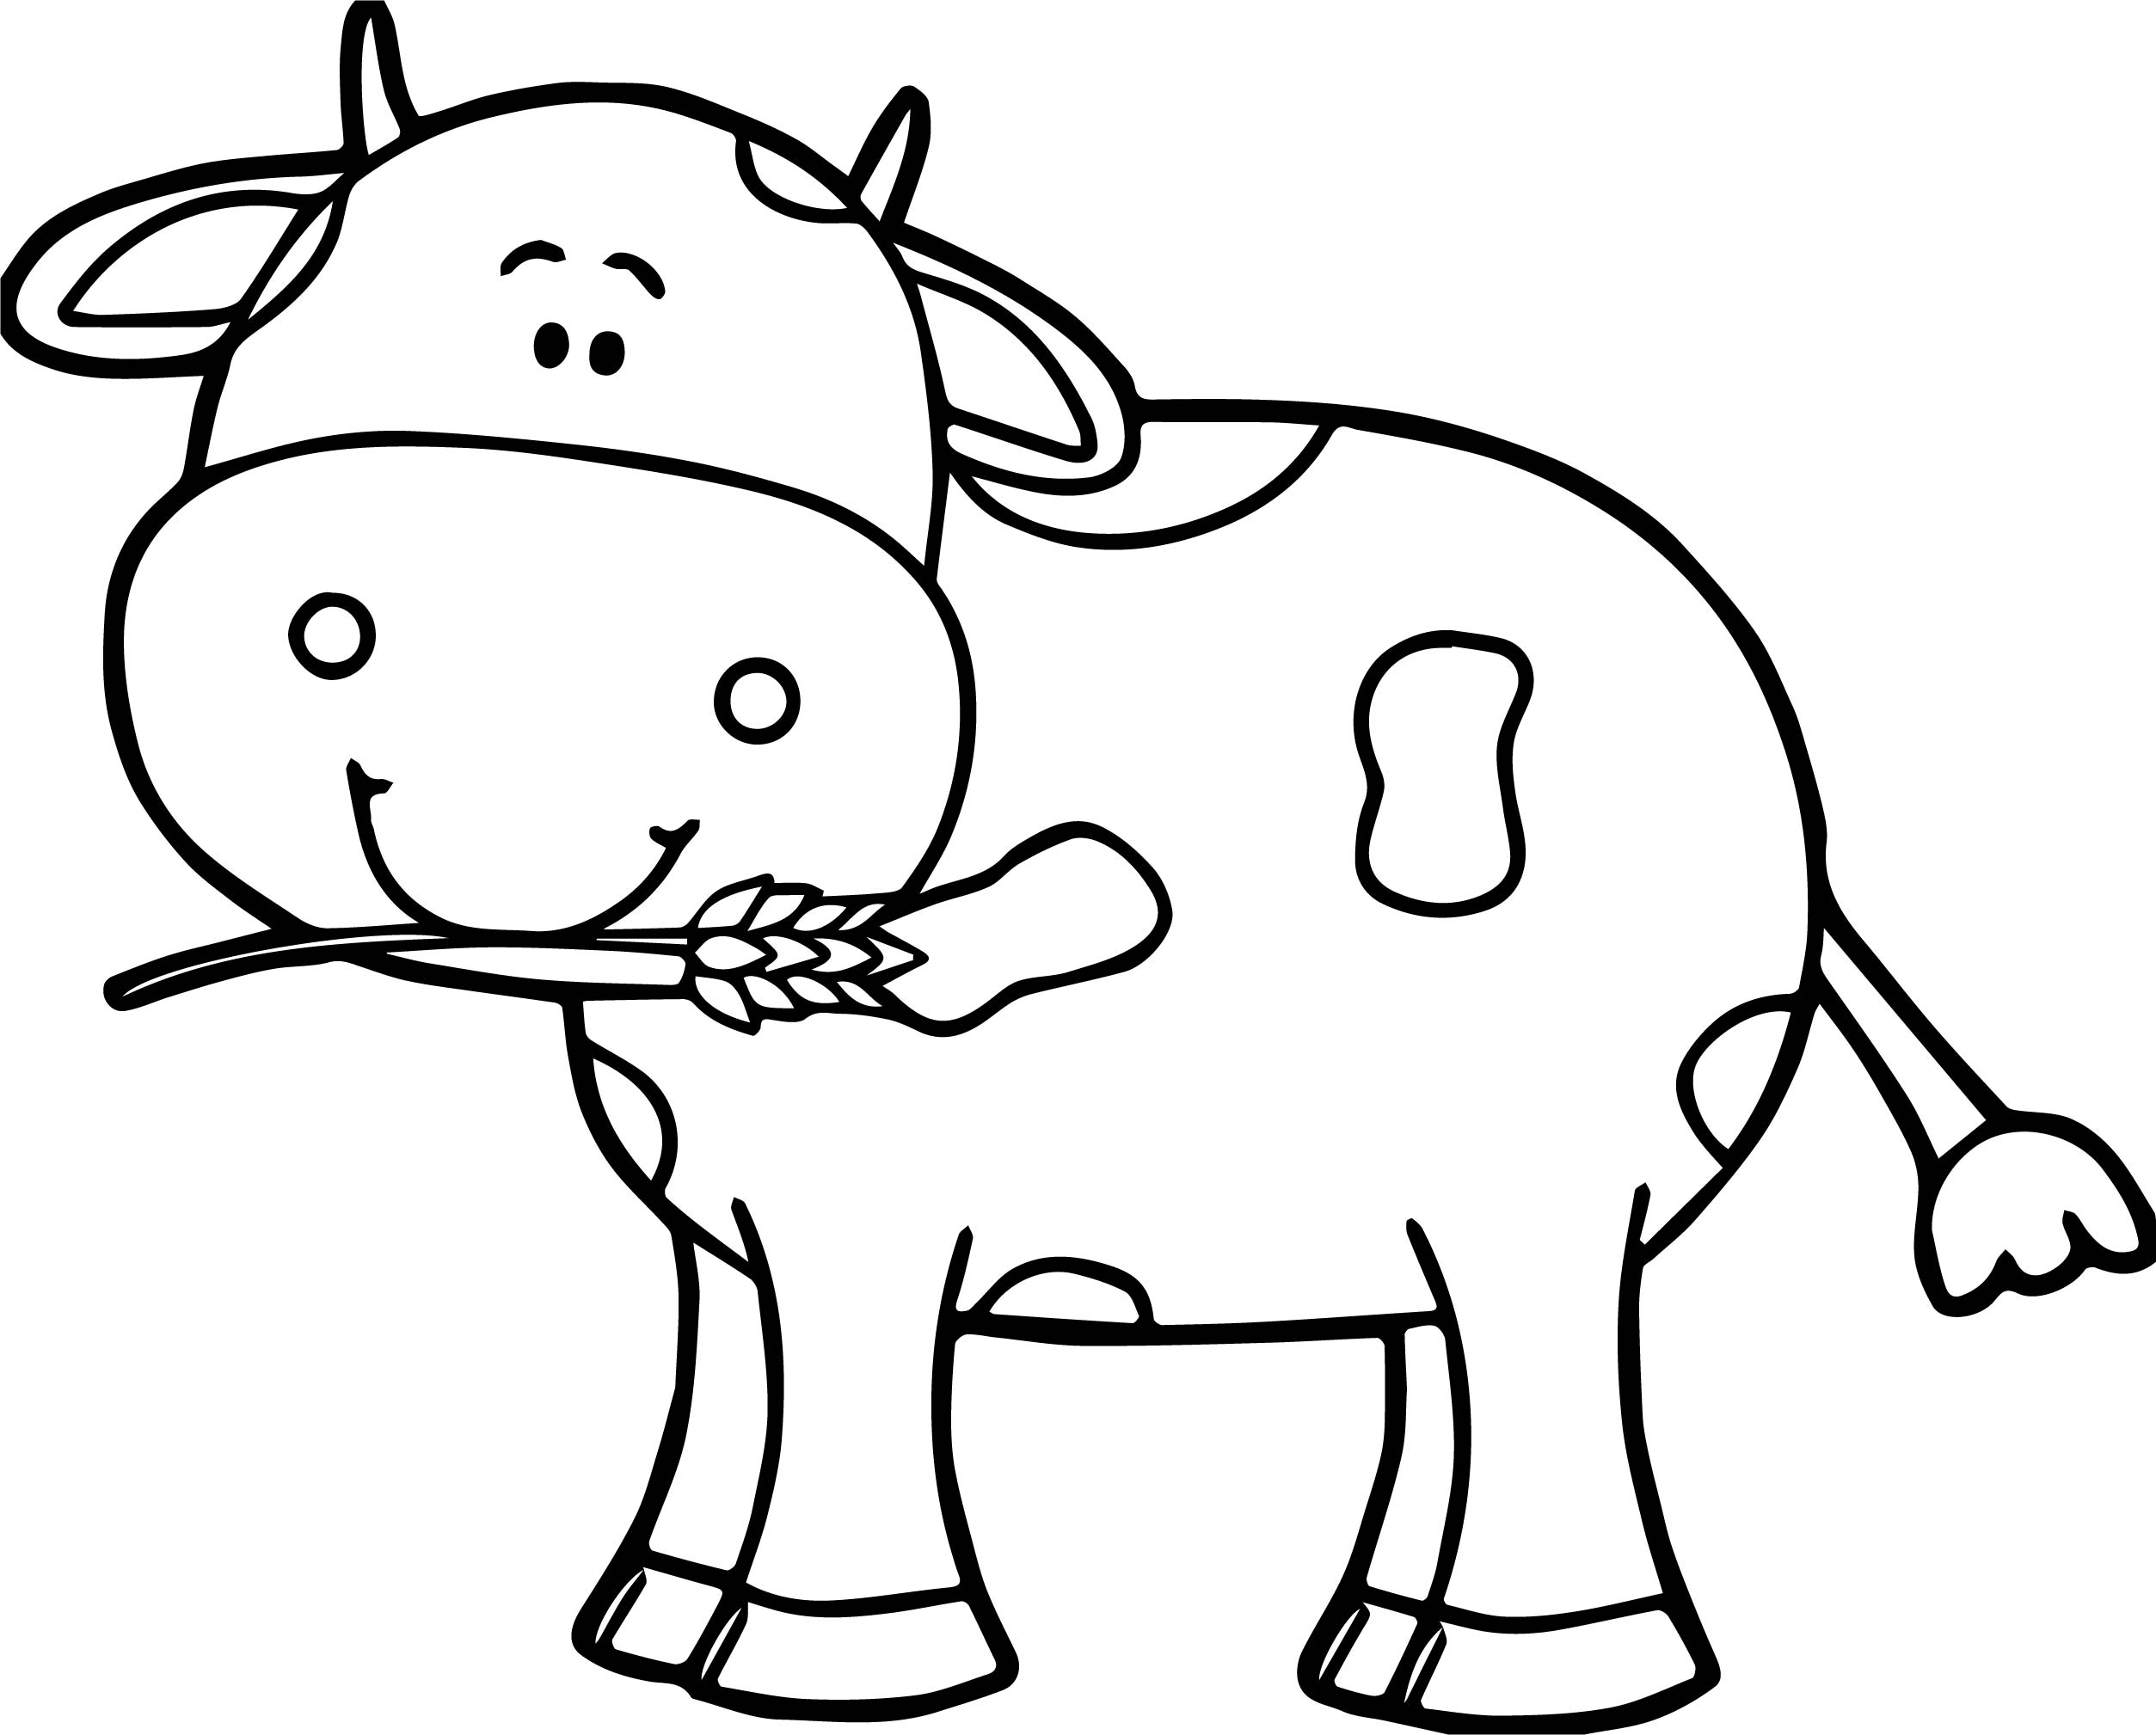 colouring pages of cow cute cow coloring page wecoloringpagecom pages of colouring cow